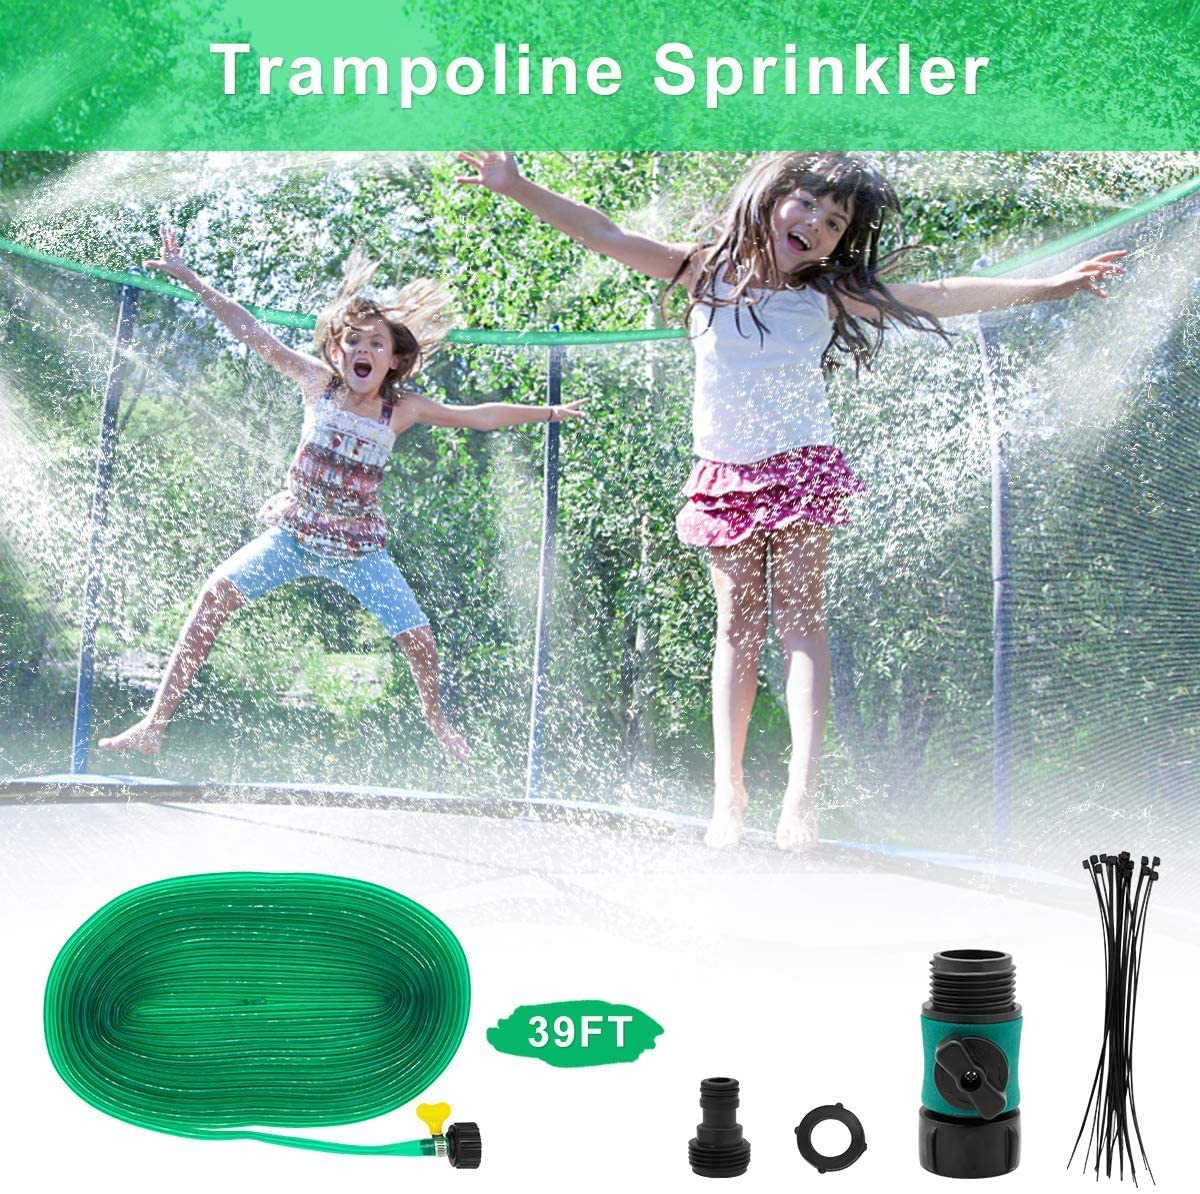 DEKAVA Trampoline Sprinkler, Fun Summer Outdoor Water Park Game Sprinkler for Kids, Yard Toys Trampoline Accessories 39ft